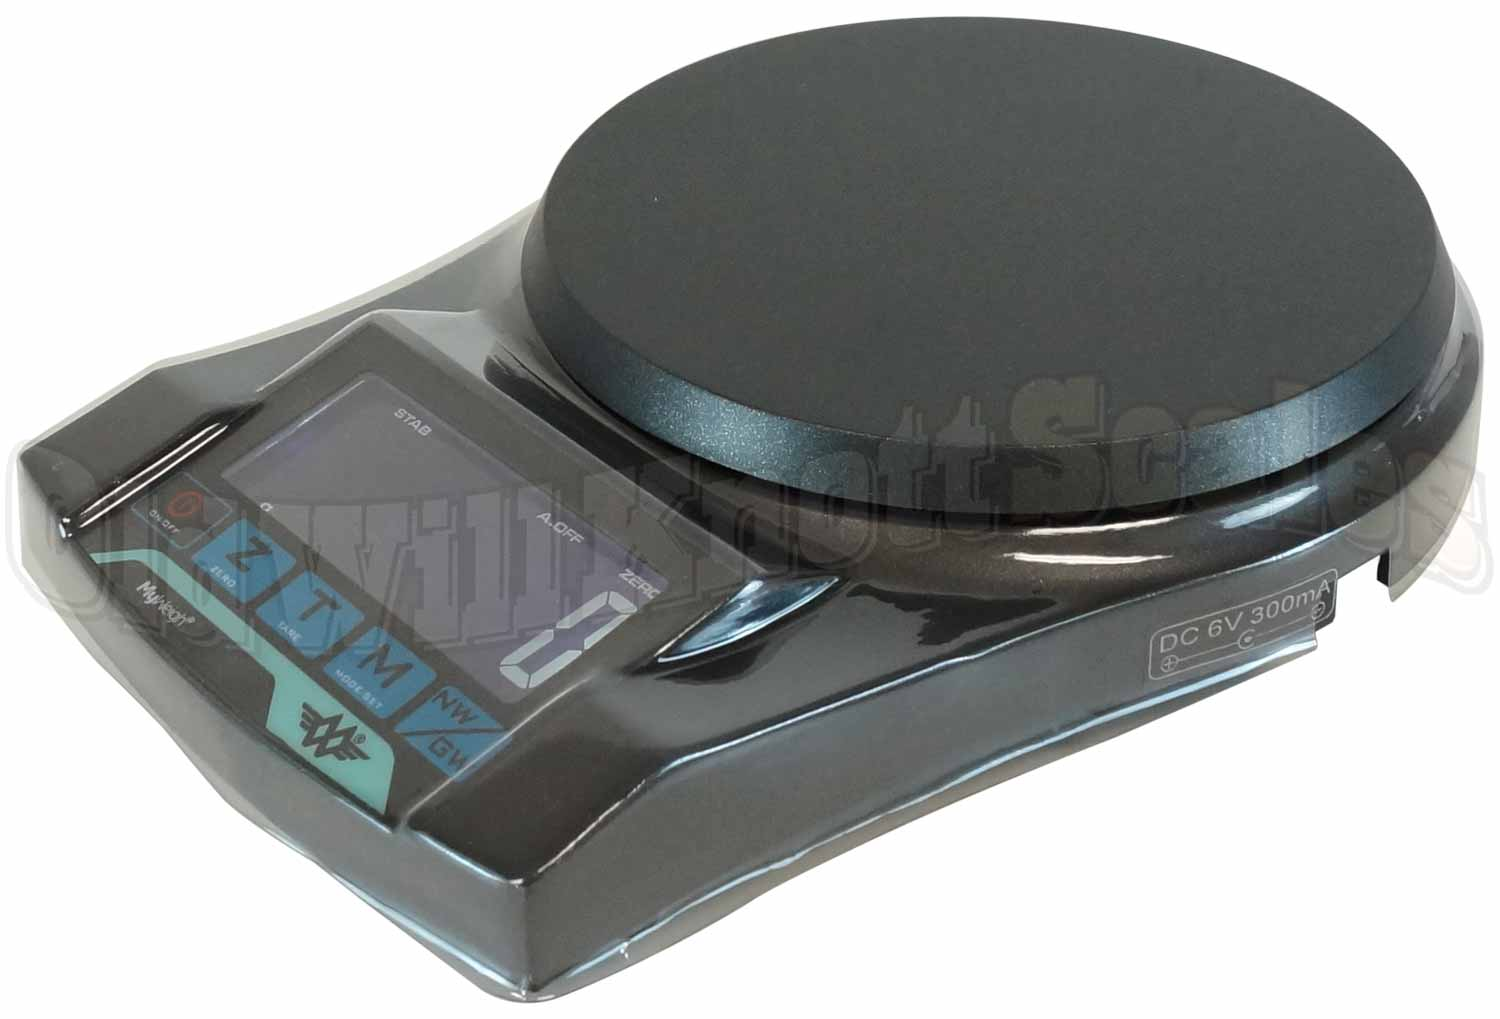 My Weigh - i5000 - With Cover